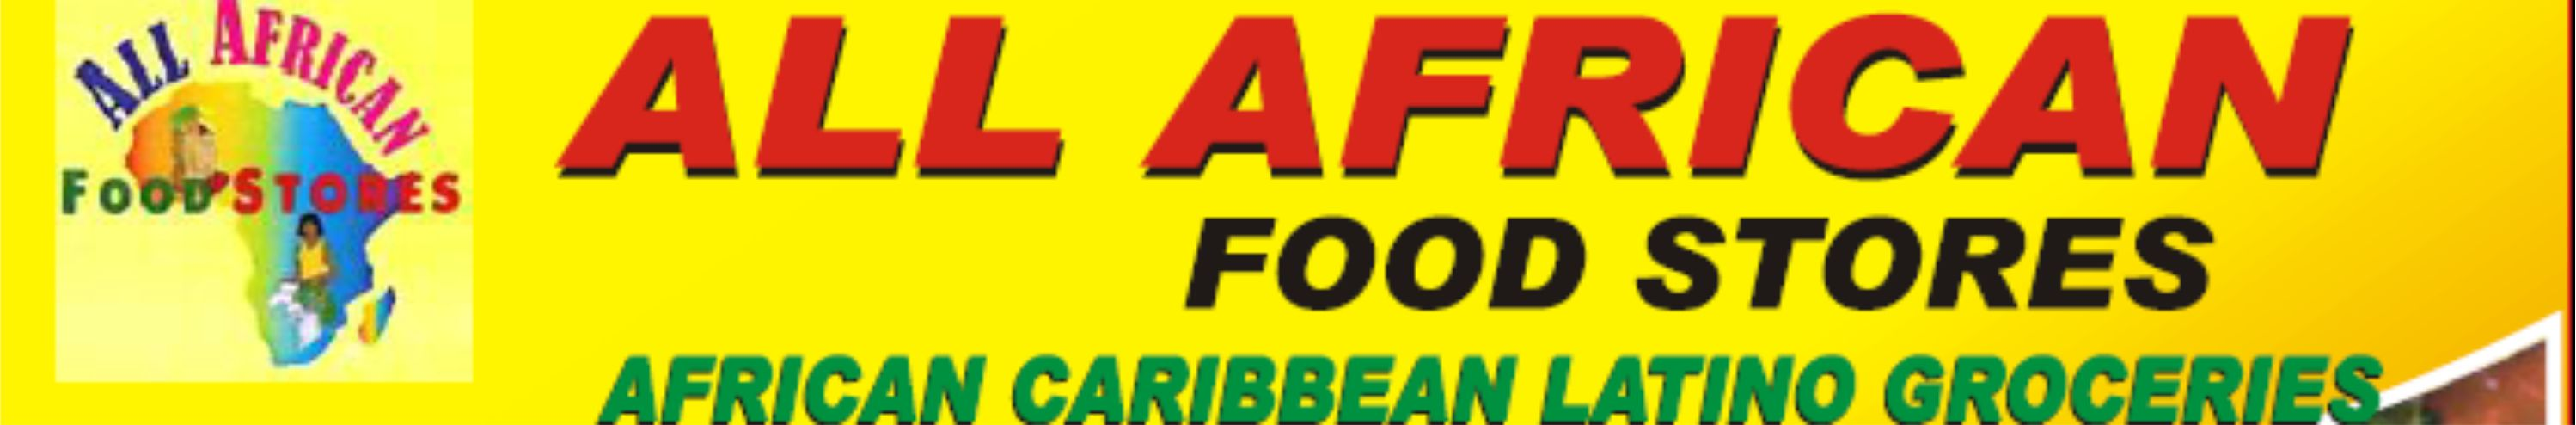 all africa food